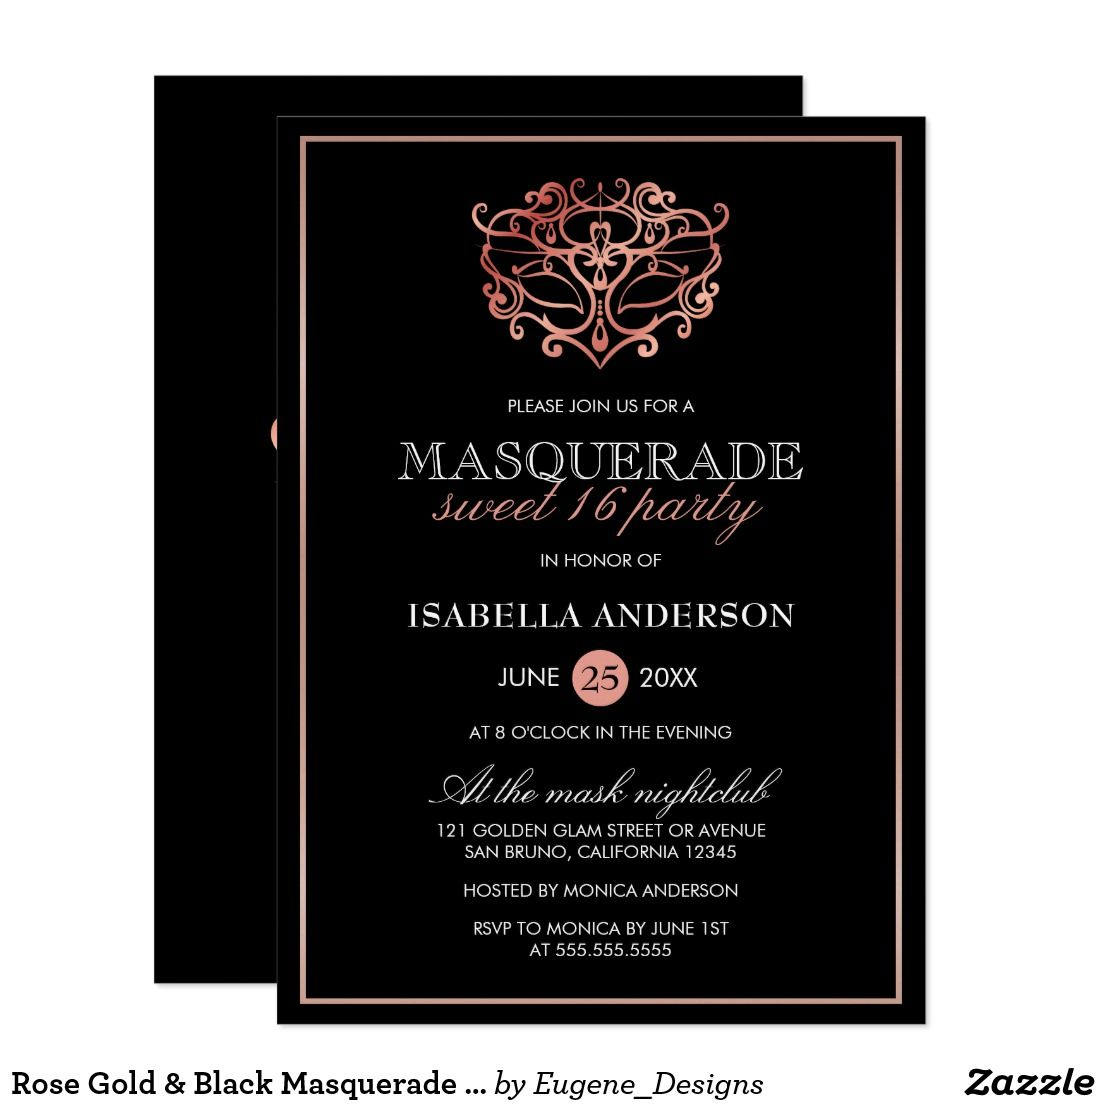 About This Design Rose Gold Black Masquerade Sweet 16 Typography